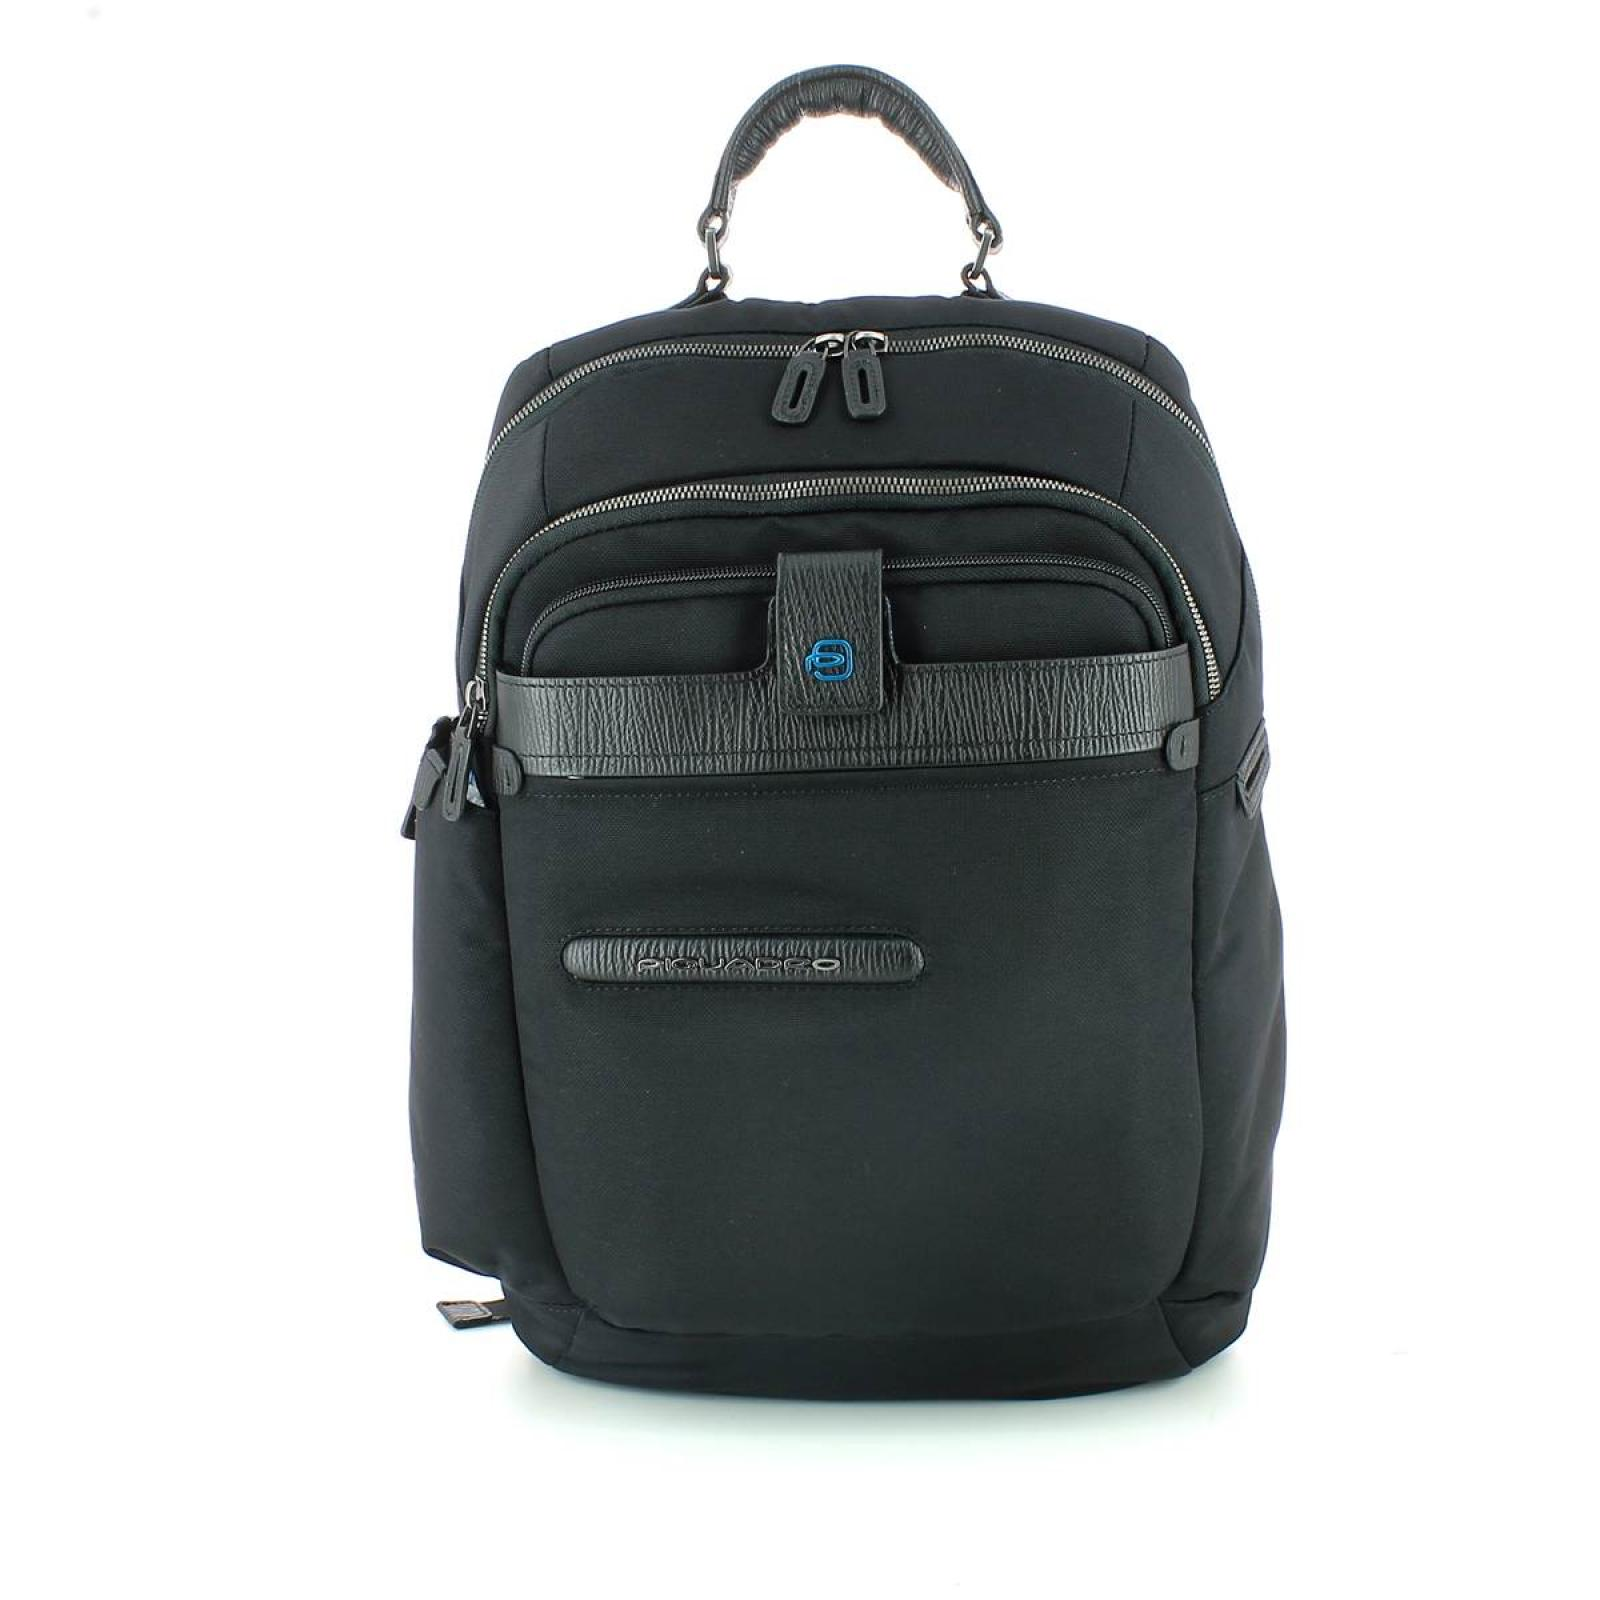 Signo Backpack